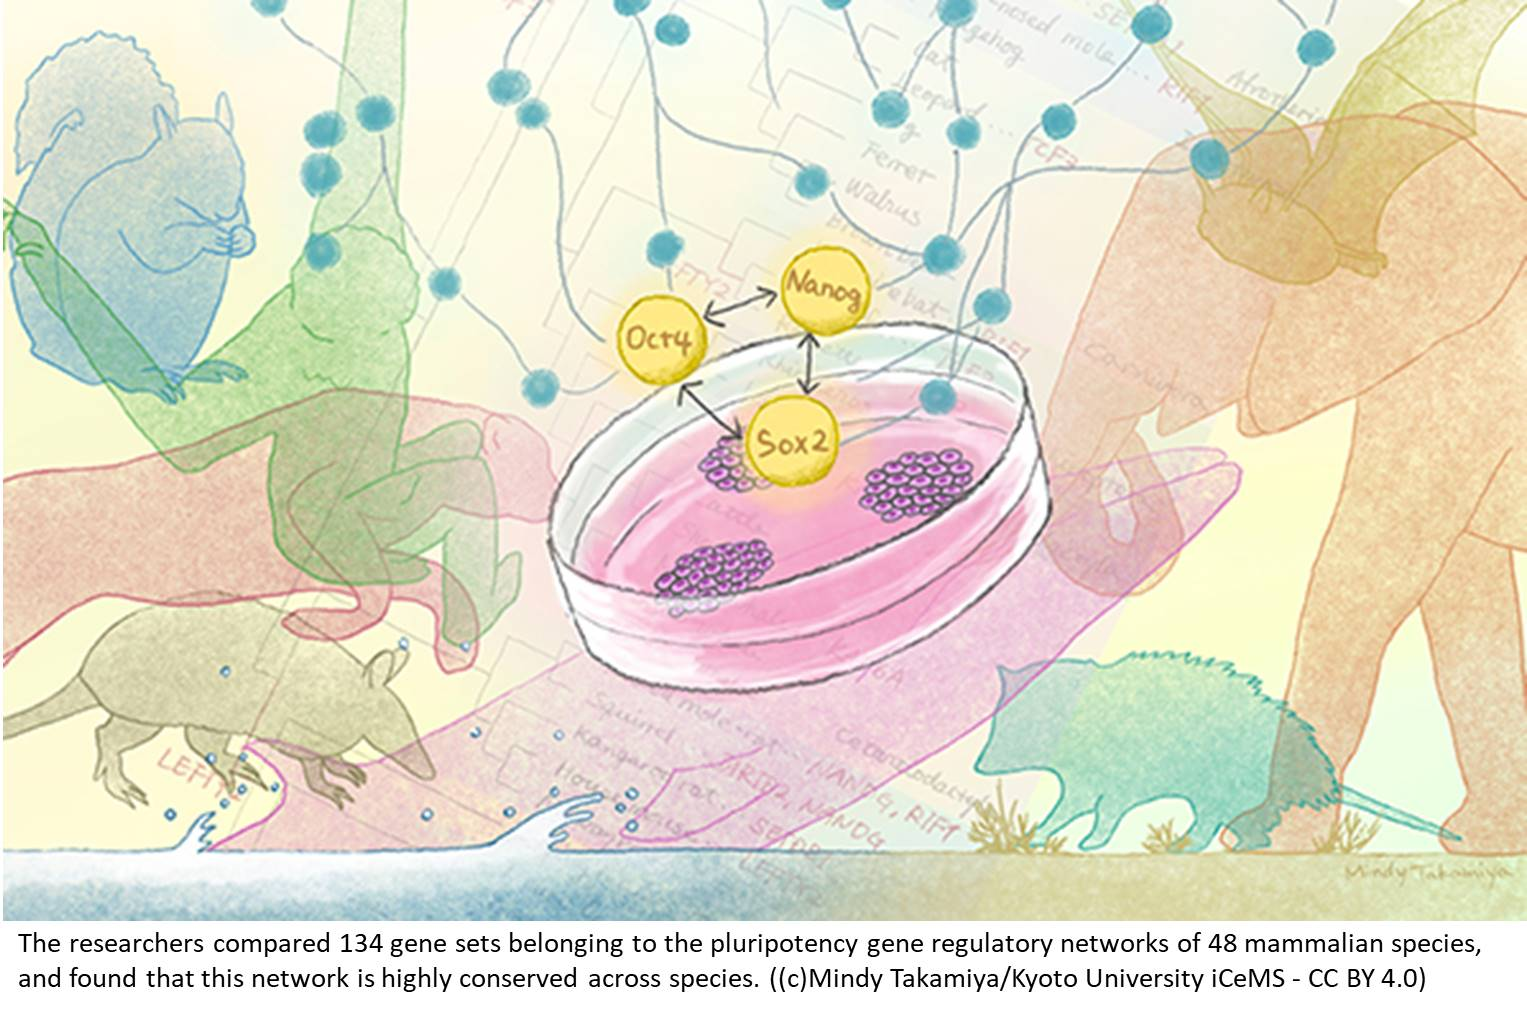 Highly conserved pluripotency gene regulatory networks across species